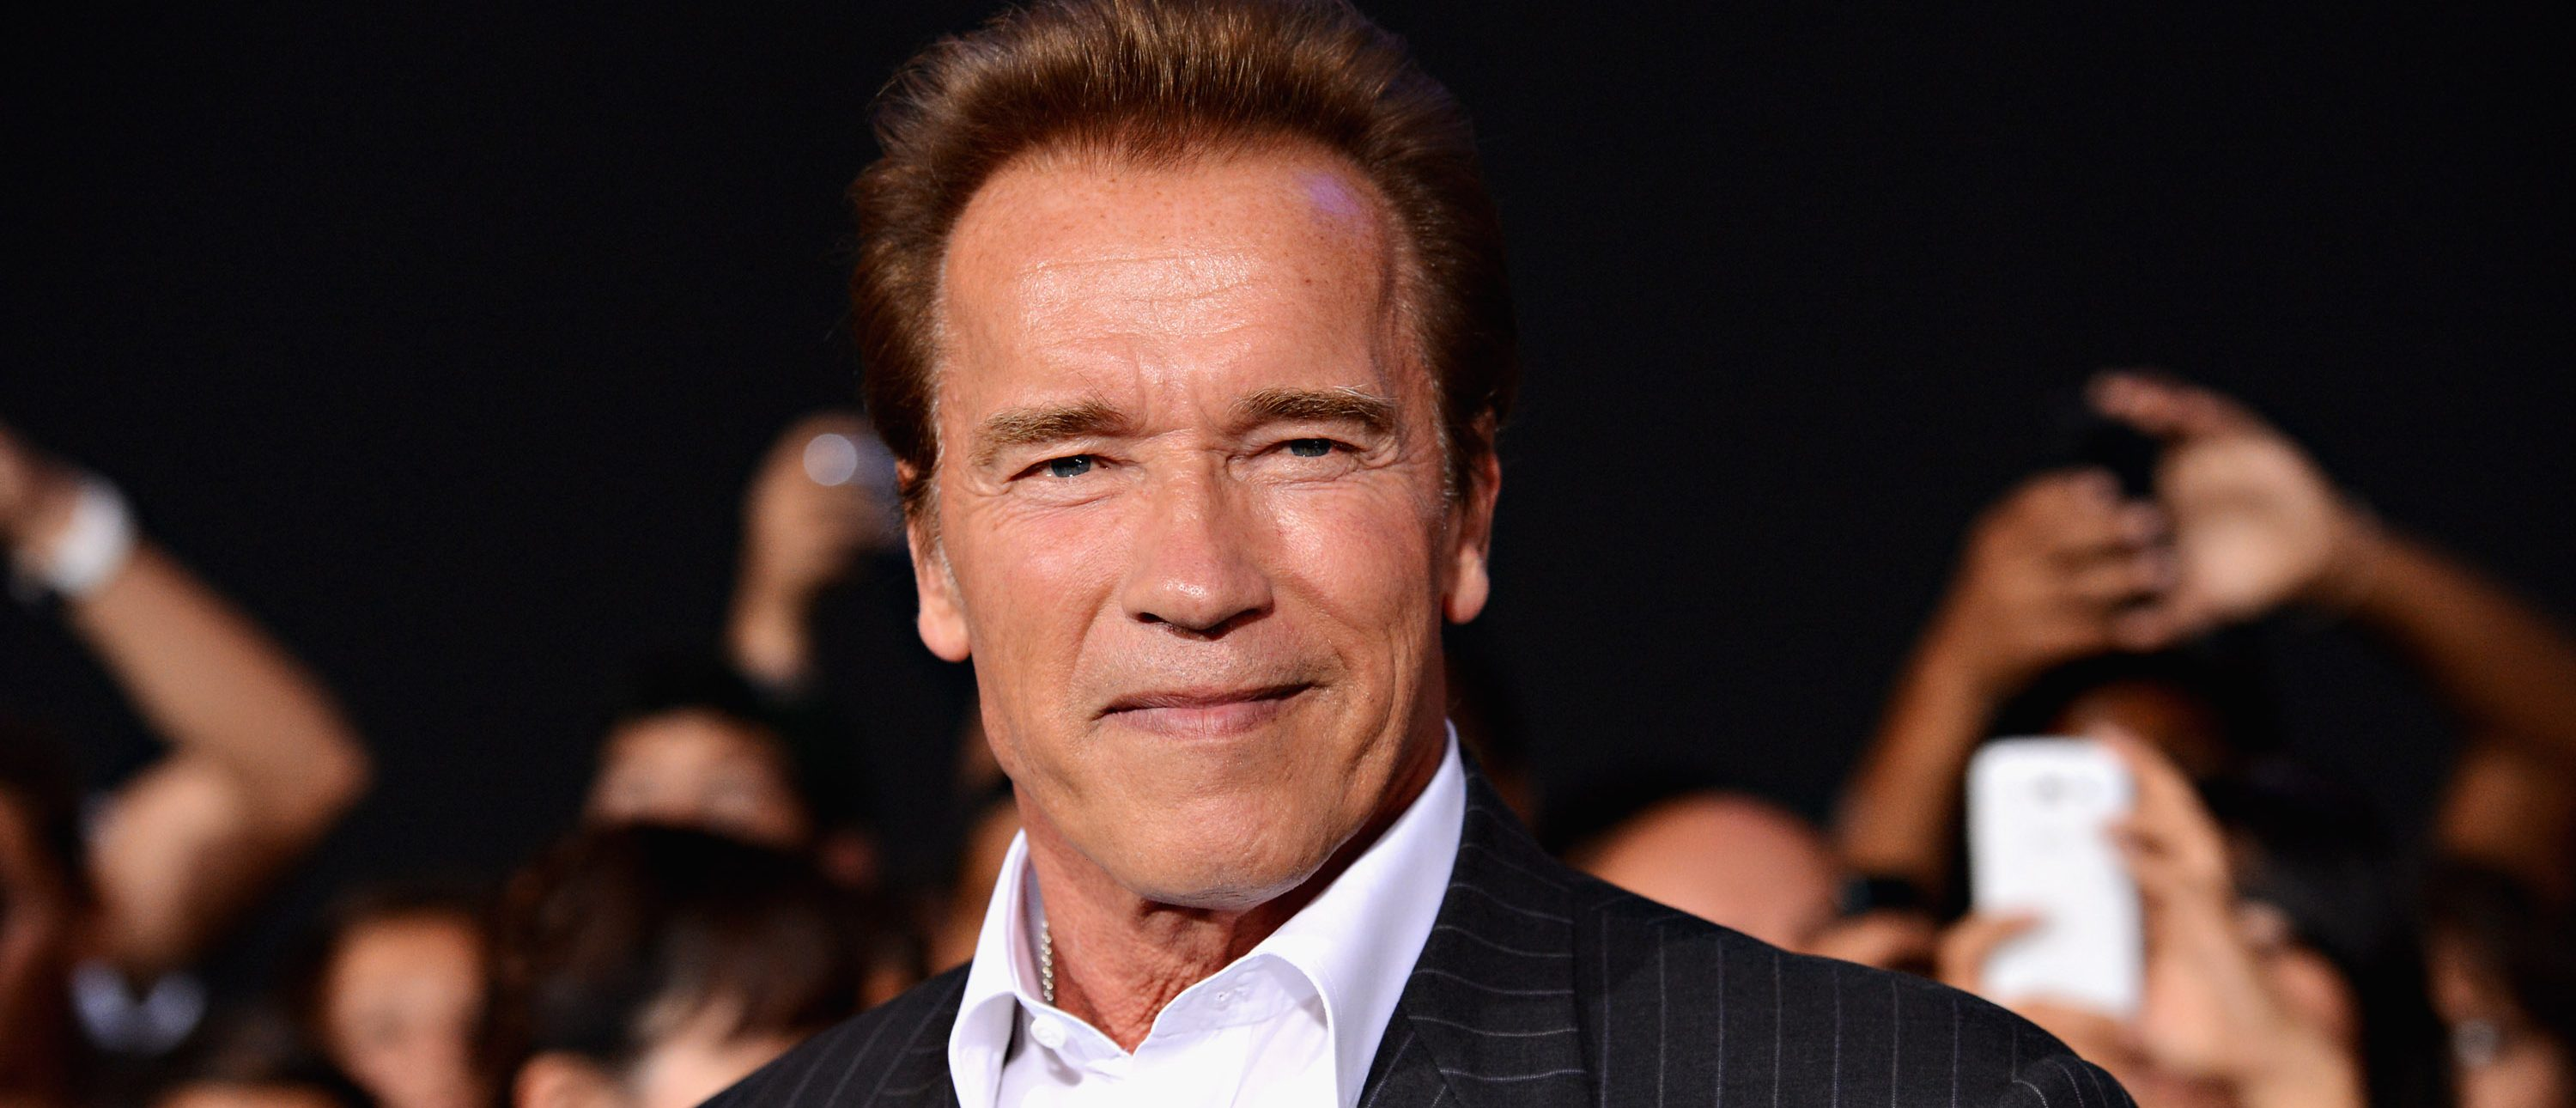 """Actor Arnold Schwarzenegger arrives at Lionsgate Films' """"The Expendables 2"""" premiere on August 15, 2012 in Hollywood, California. (Photo by Jason Merritt/Getty Images)"""